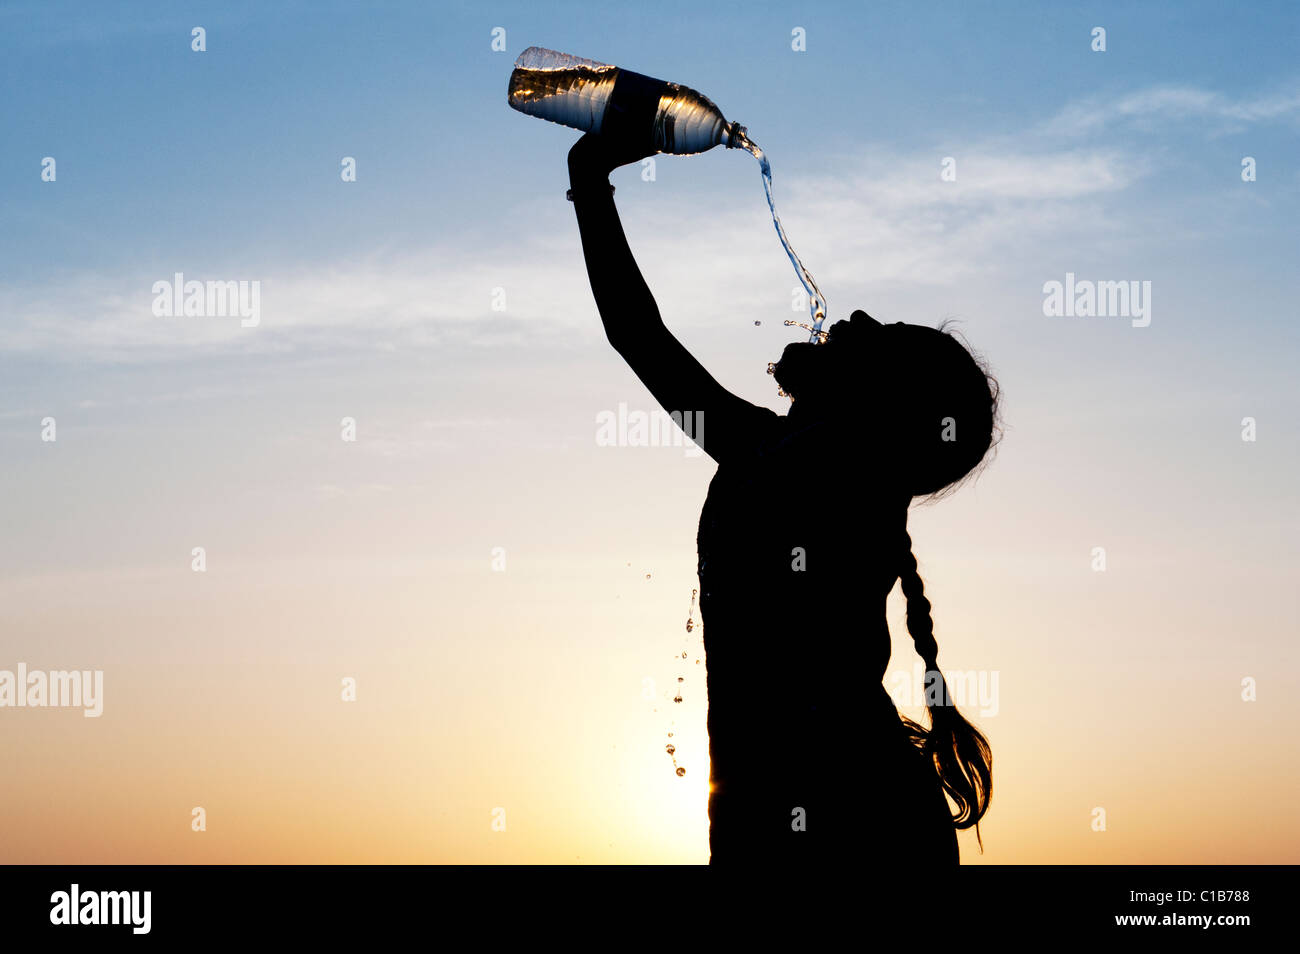 Indian girl drinking mineral water from plastic water bottle at sunset. India. Silhouette Stock Photo